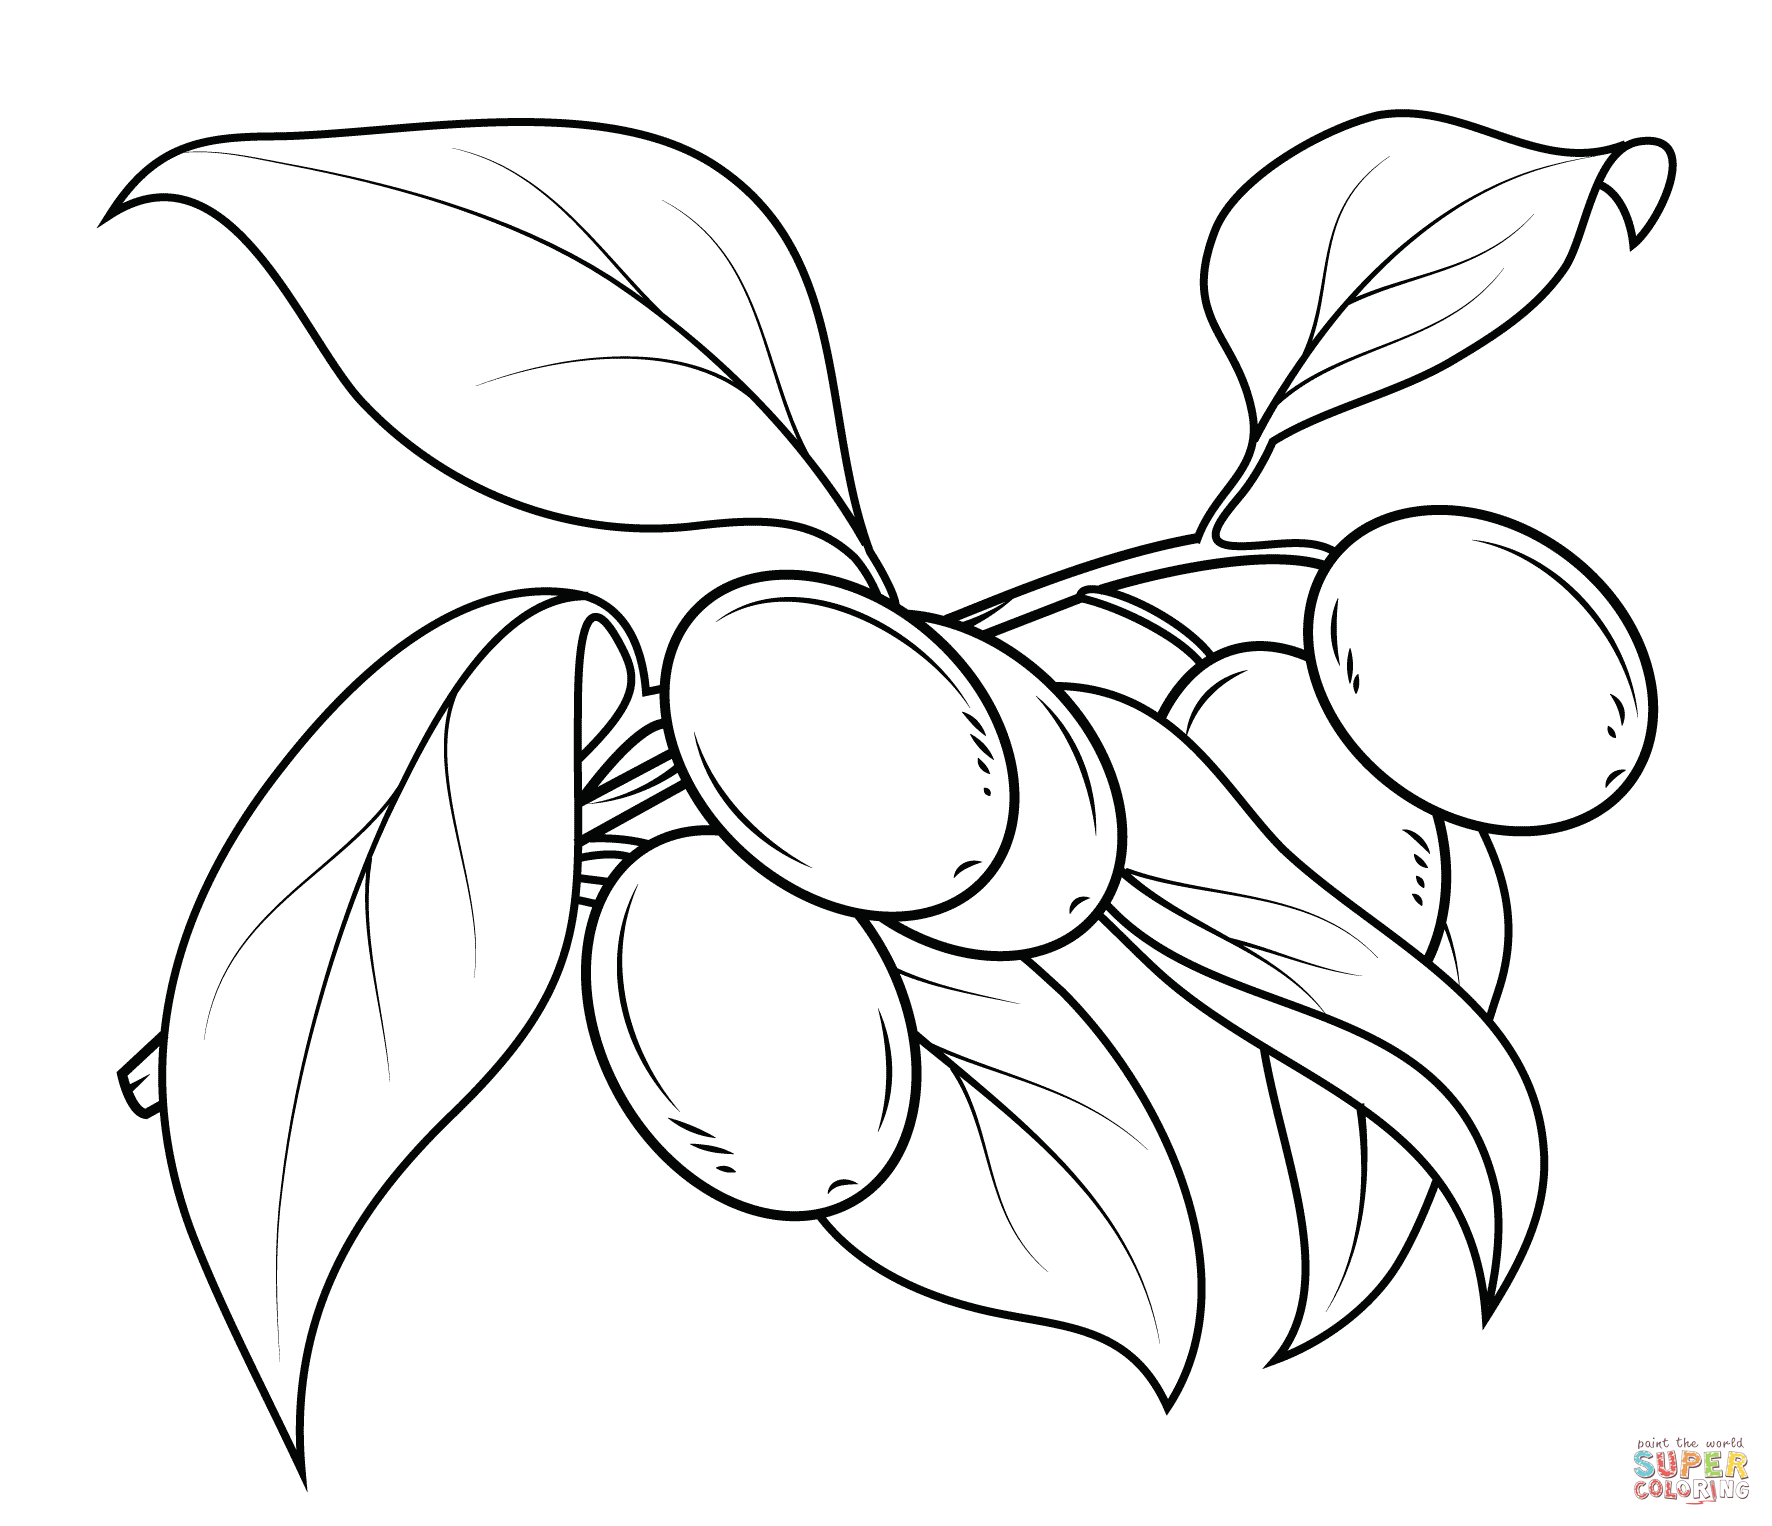 Olive Tree Coloring Page At Getcolorings